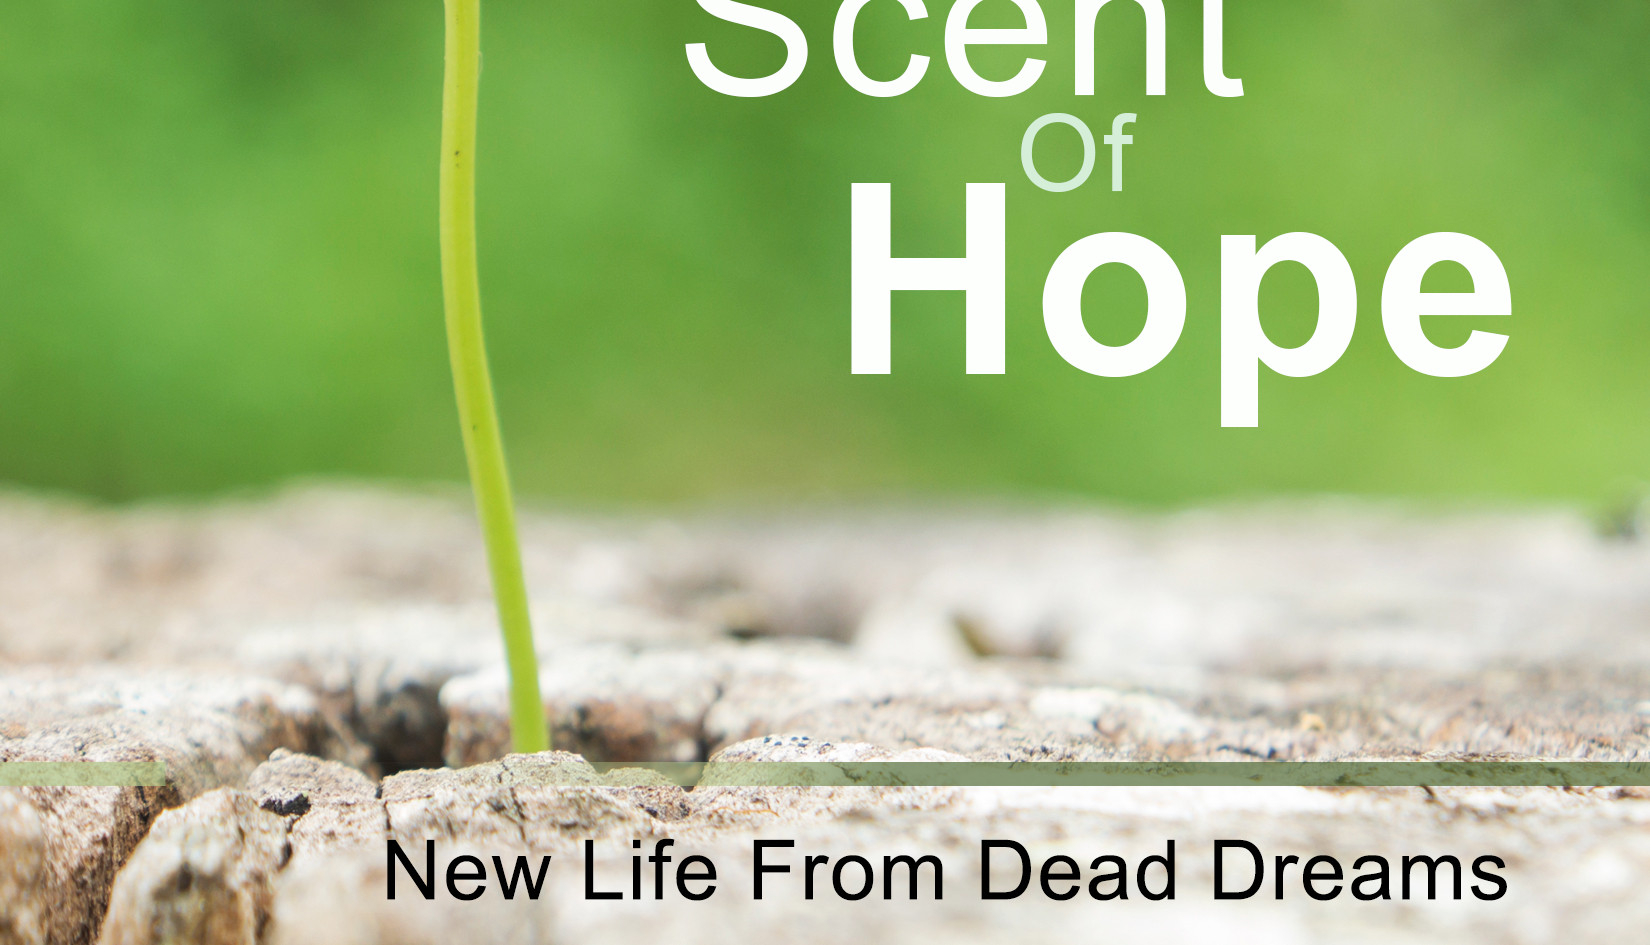 The Scent of Hope